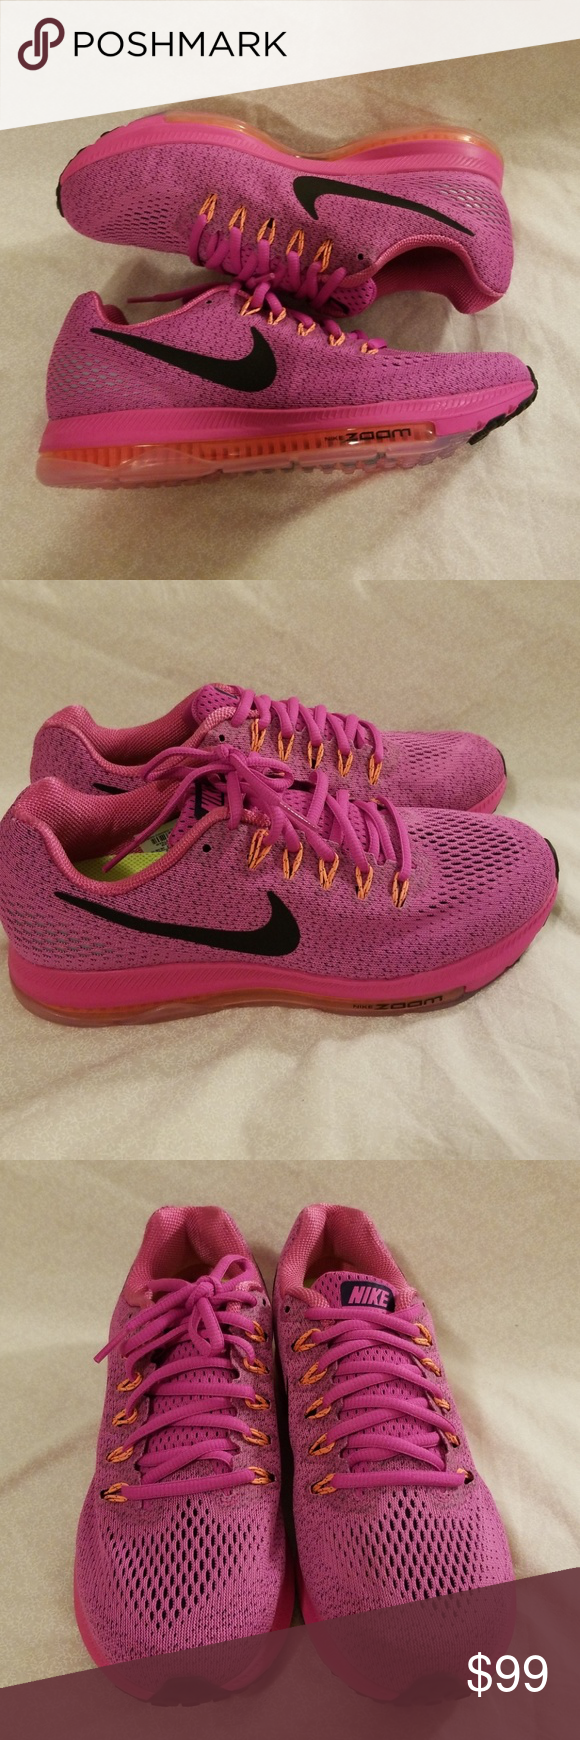 3c9acdab13ae9 Nike Wmns Zoom All Out Low Running Shoes NWOB Nike Womens Zoom All Out Low  Size  9 Fire Pink Black- Bright Mango 878671 600 Msrp   160.00 Nike Shoes  ...